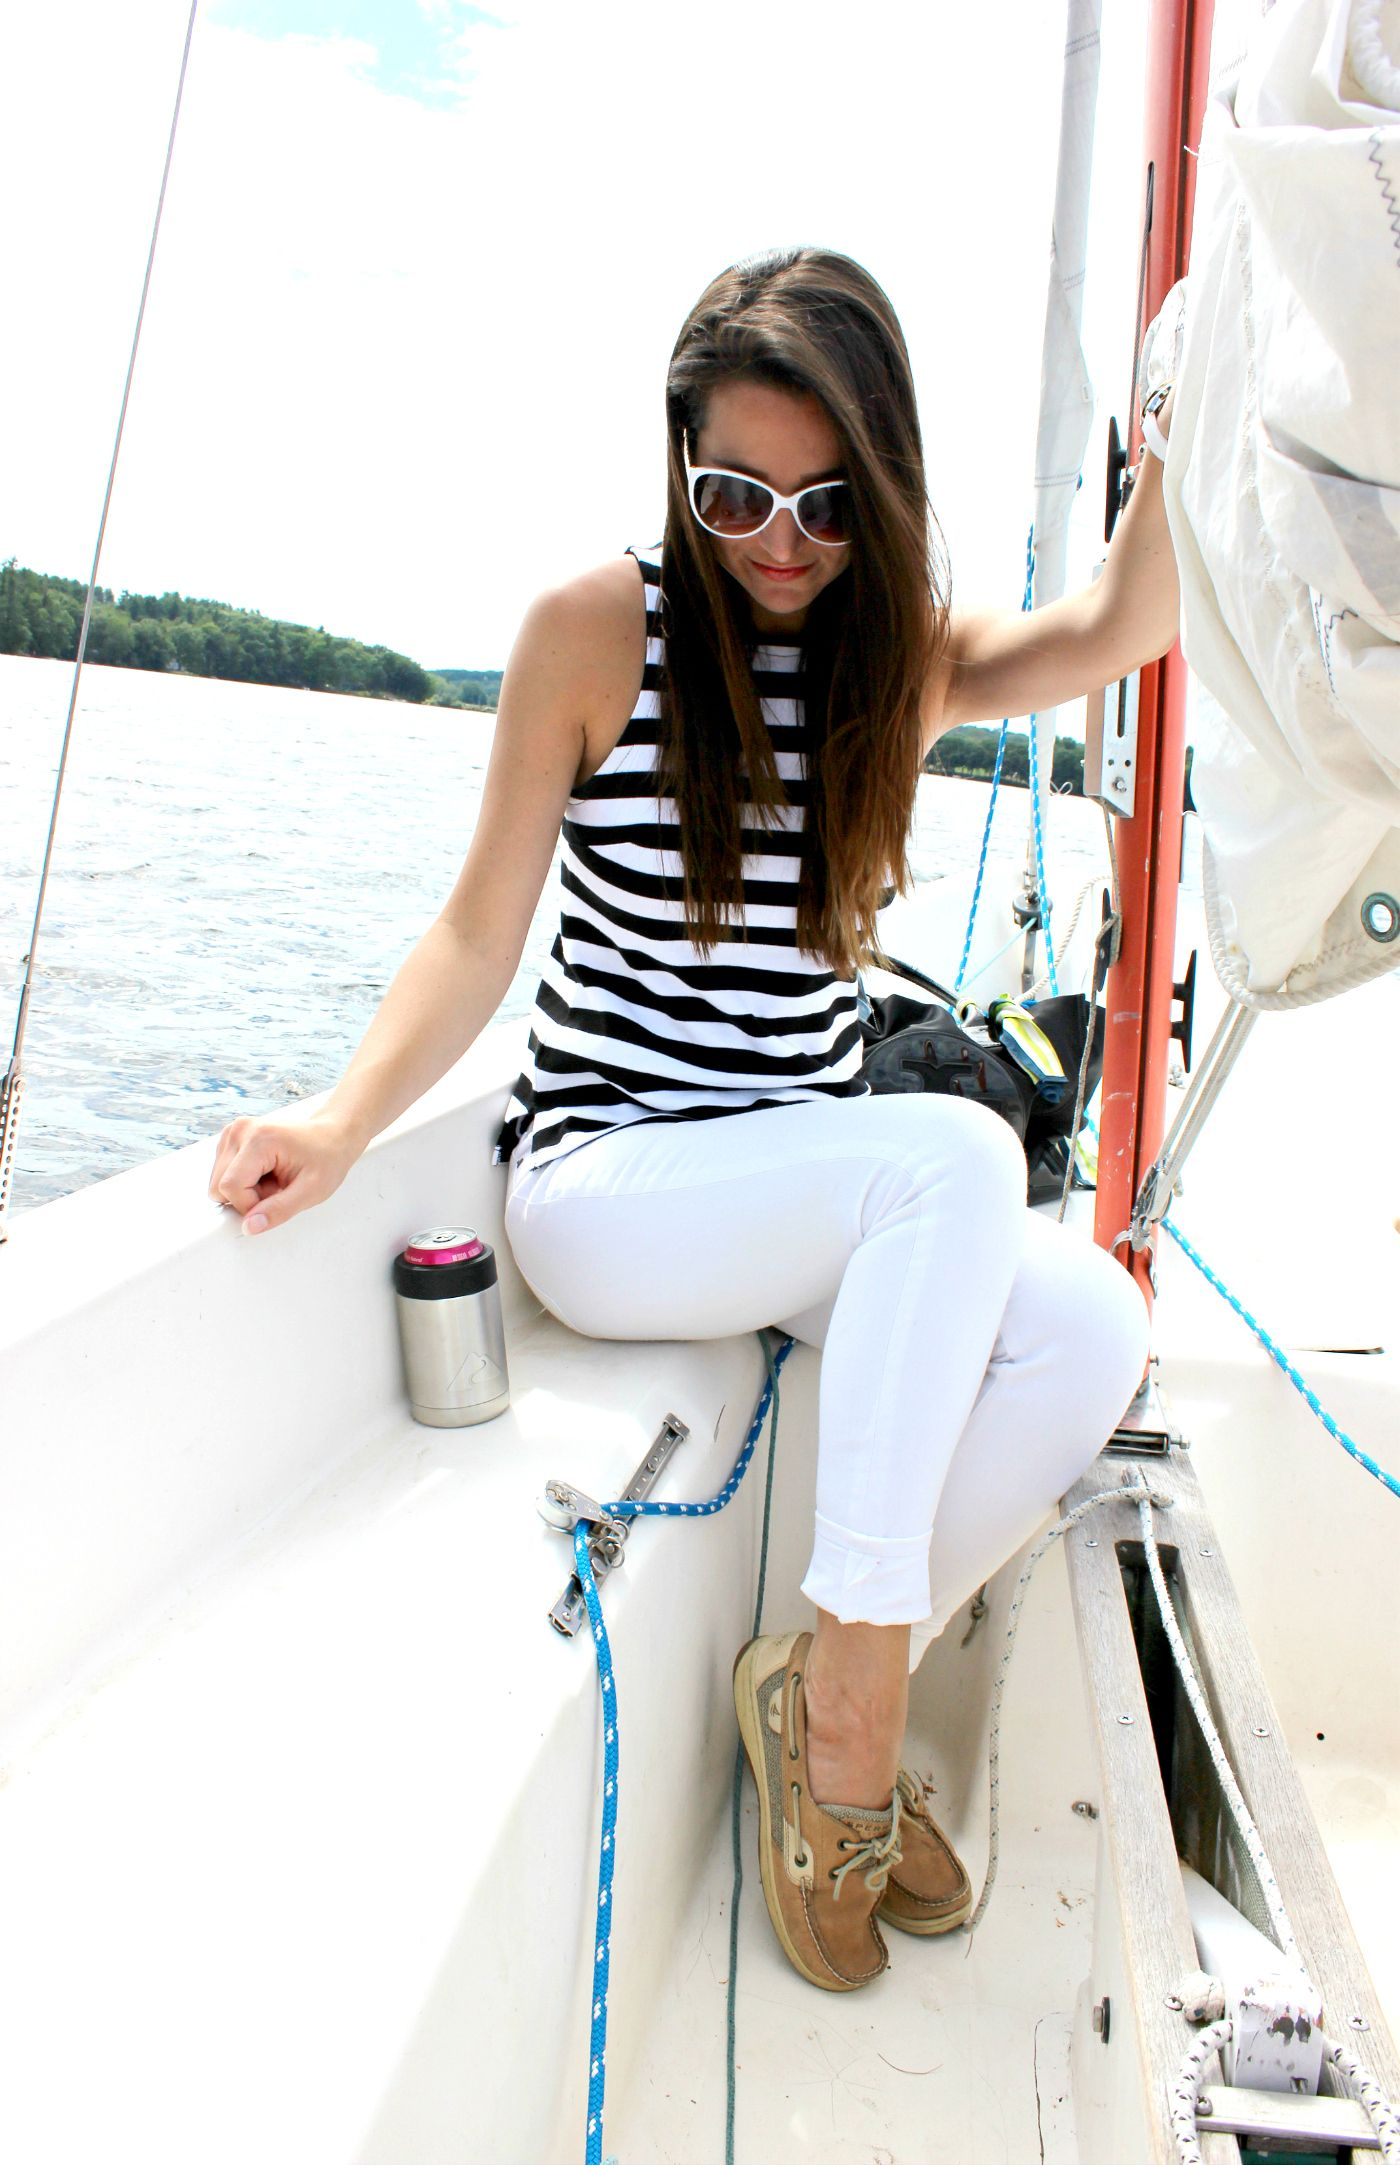 c79f4889411 Banana Republic rugby stripe tank top with white skinny jeans and classic  Sperry boat shoes. Such a perfect Labor Day outfit idea for women!